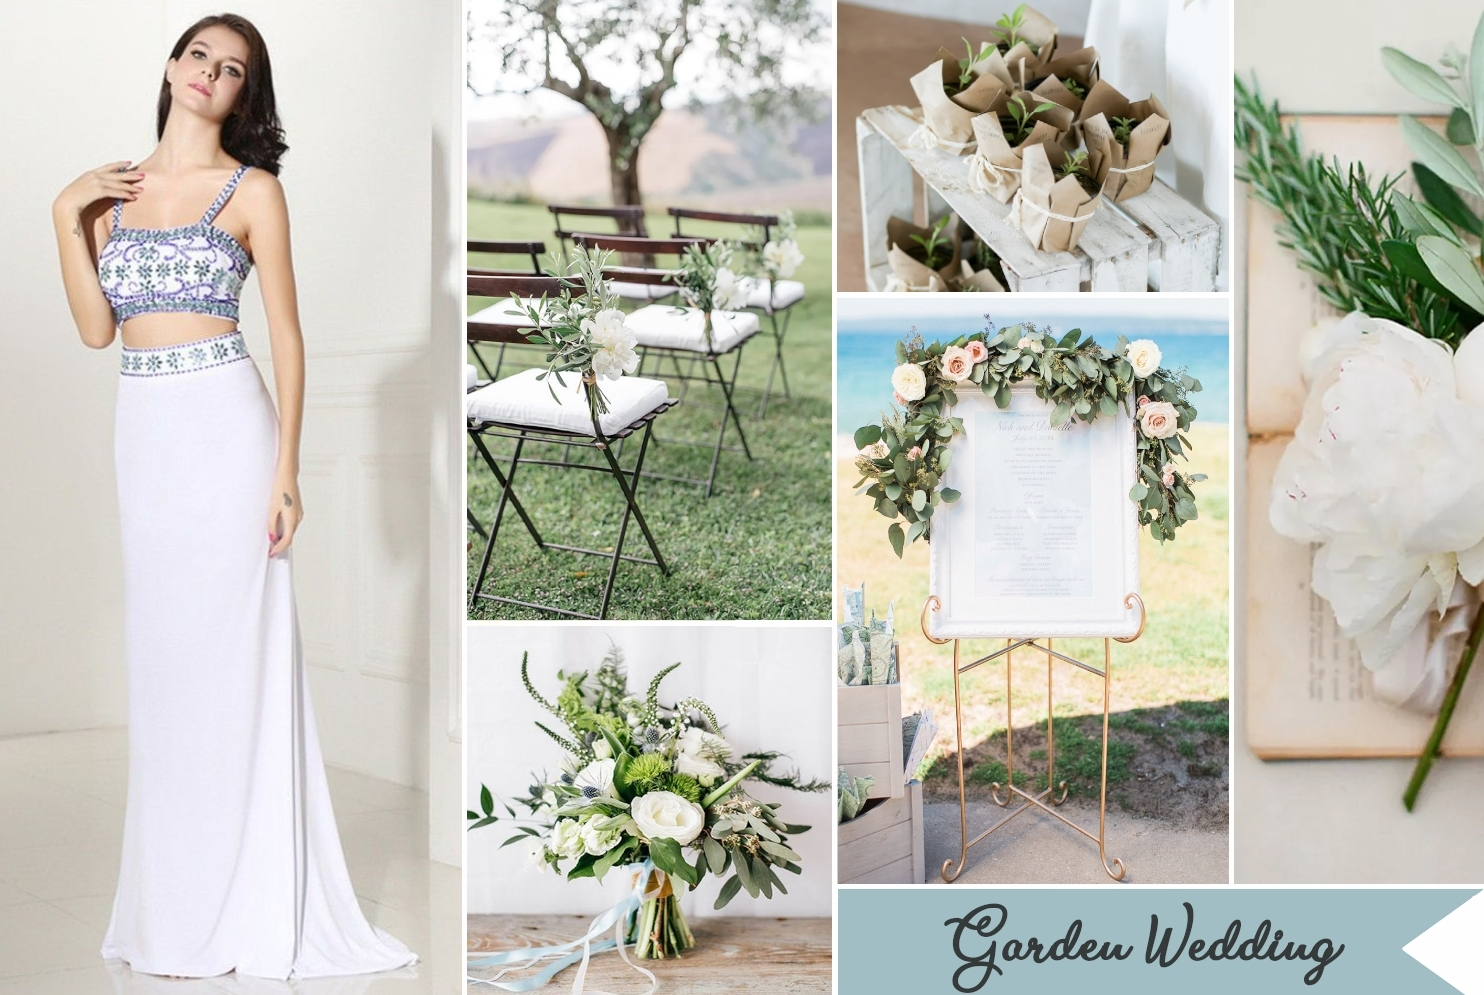 garden wedding collage